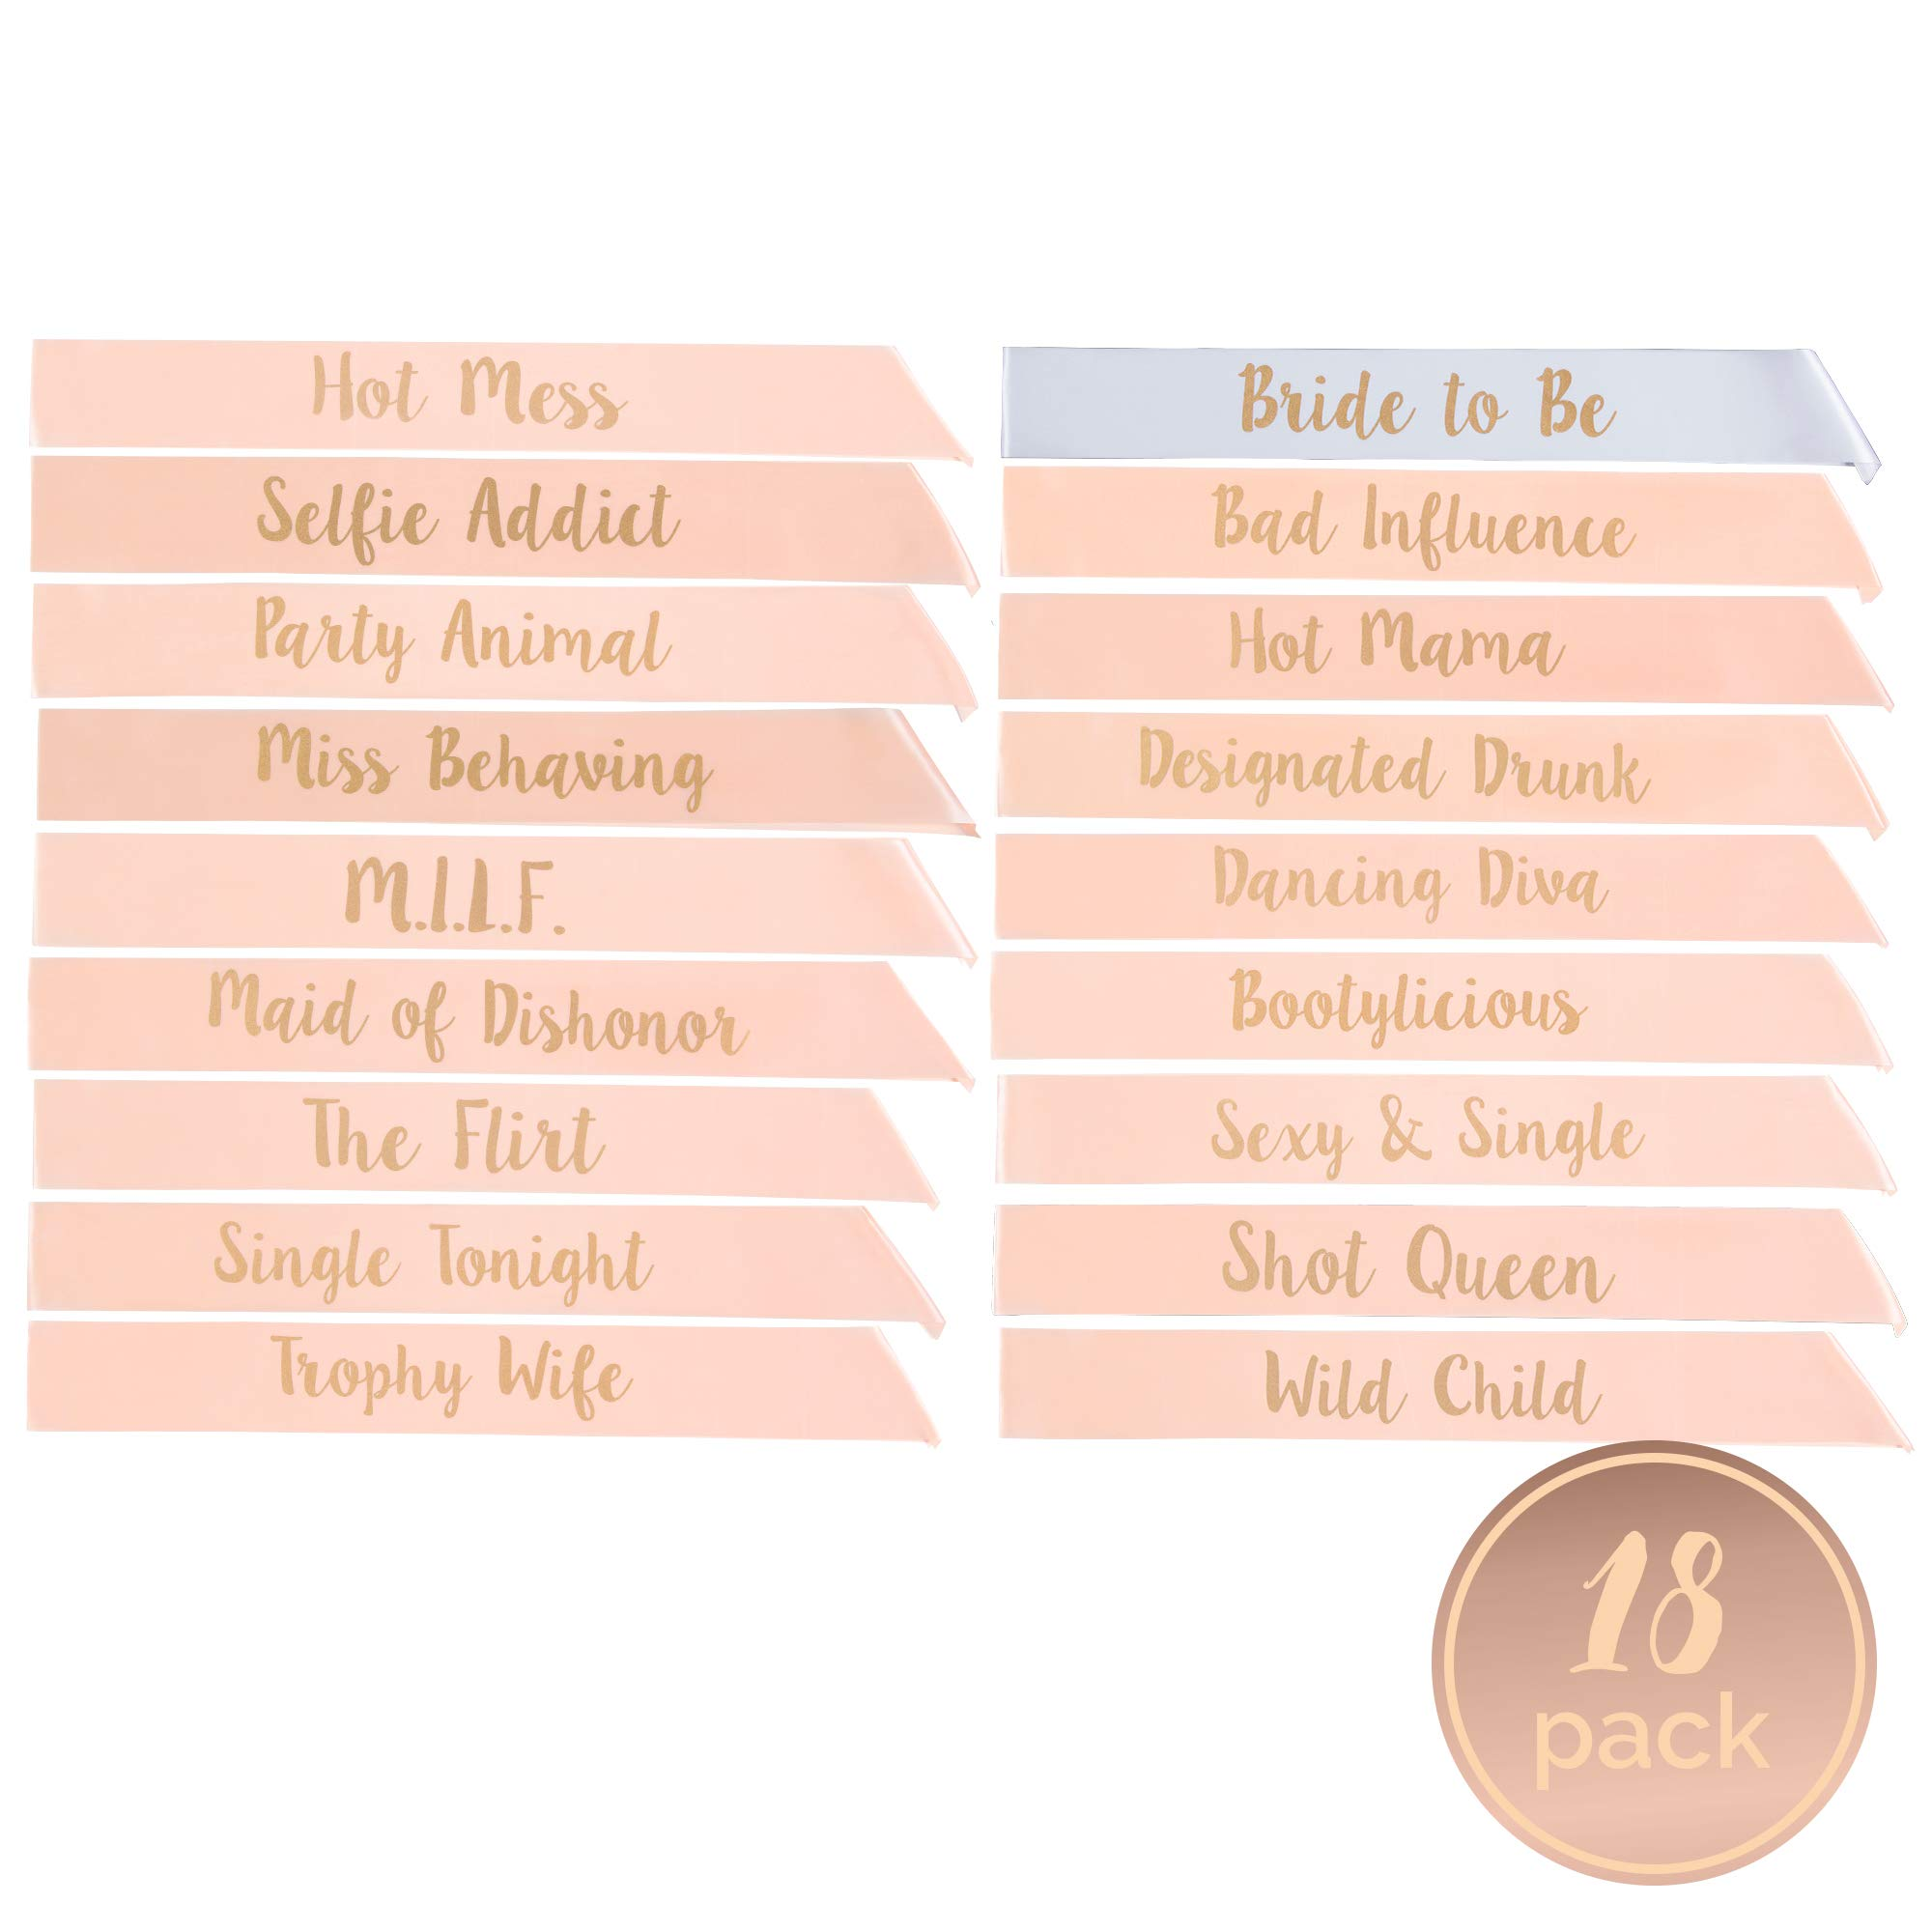 Bachelorette Party Sashes- Bride to Be and Bride Tribe Sashes (Rose Gold, 18 Pack)